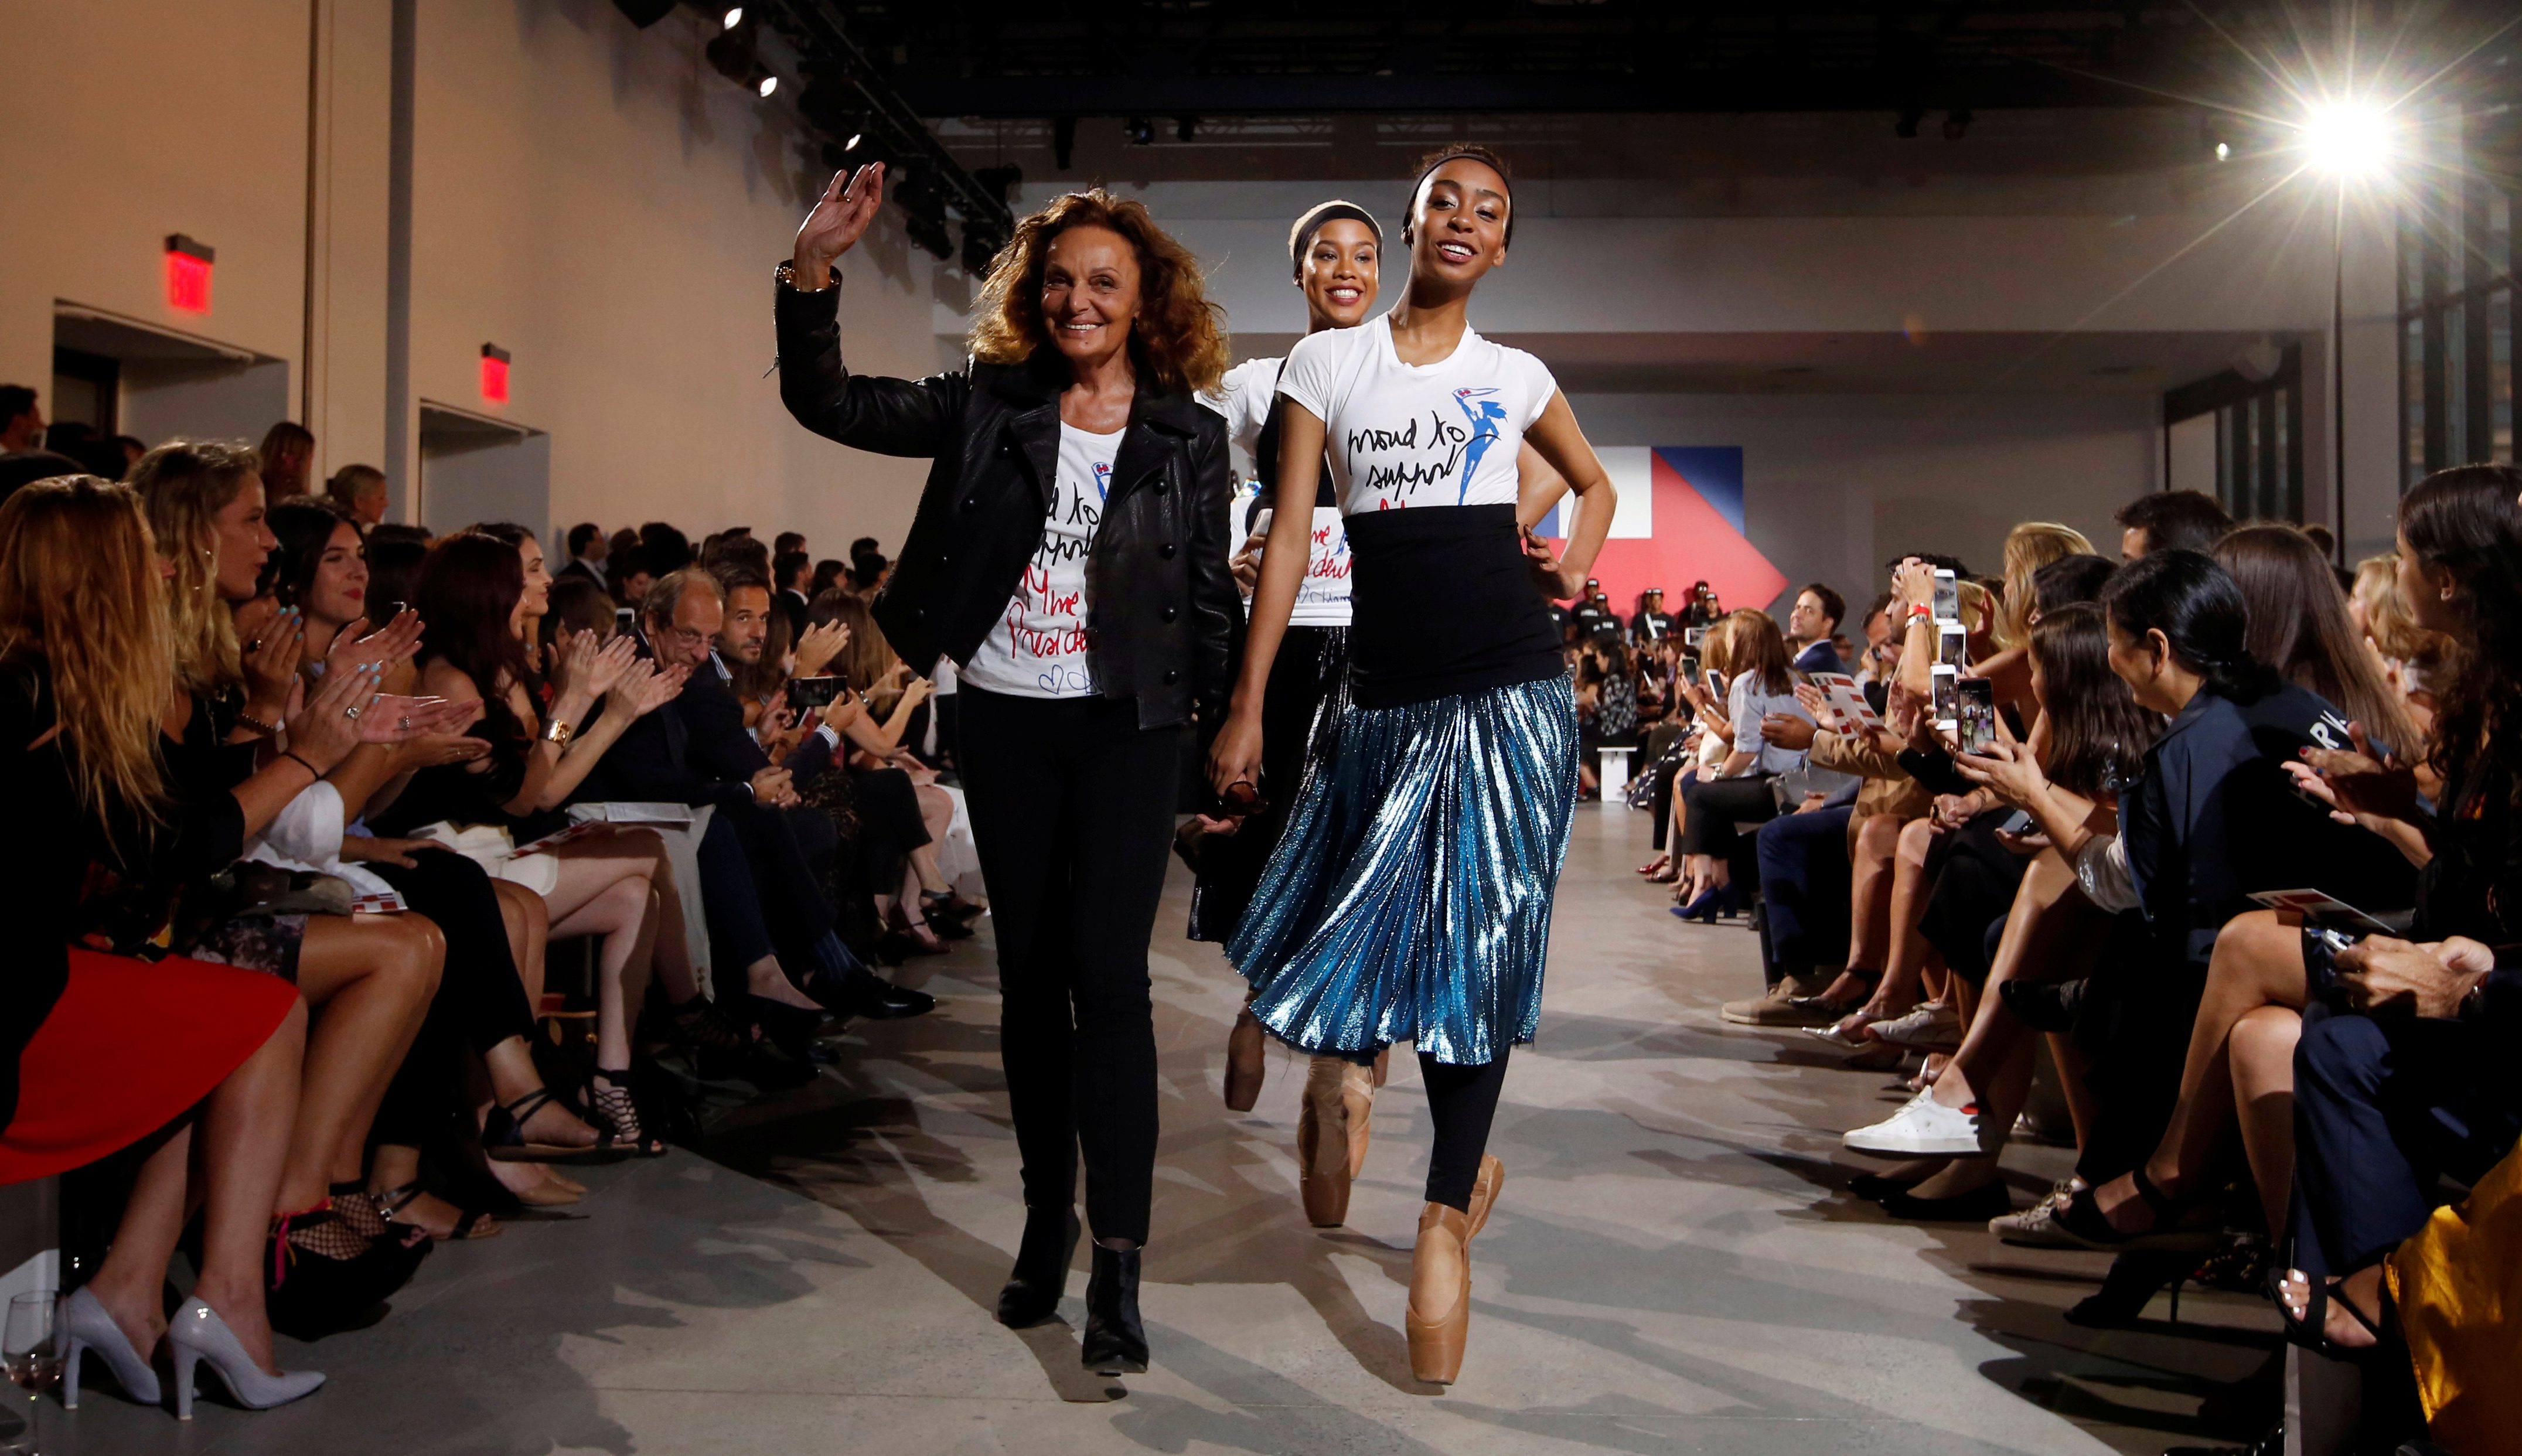 """Designer Diane von Furstenberg (L) joins models during a presentation of the """"Made for History Collection"""", supporting the campaign of Democratic presidential nominee Hillary Clinton in New York, U.S., September 6, 2016.  REUTERS/Lucas Jackson  - RTX2OF1P"""